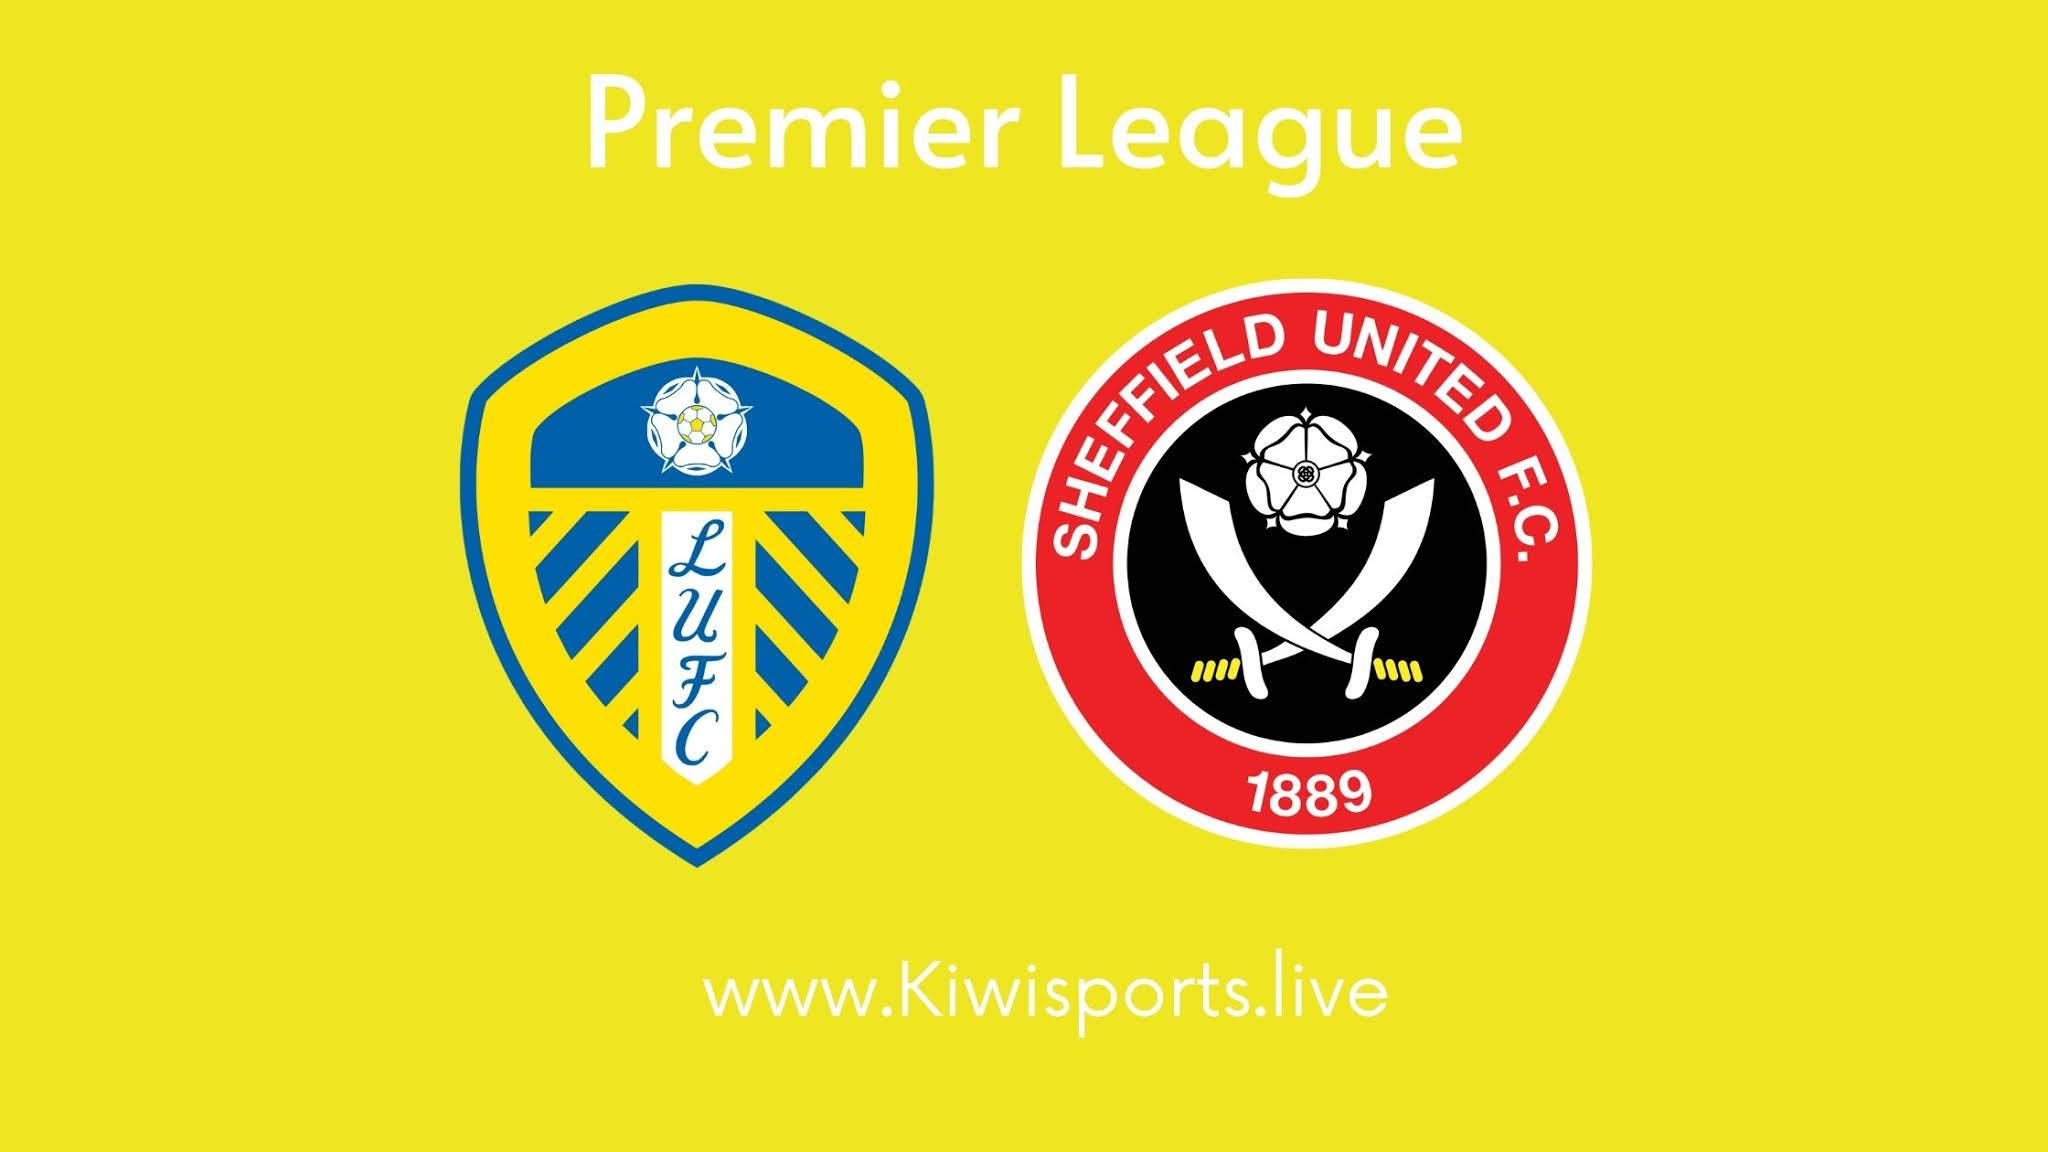 Sheffield United vs Leeds United